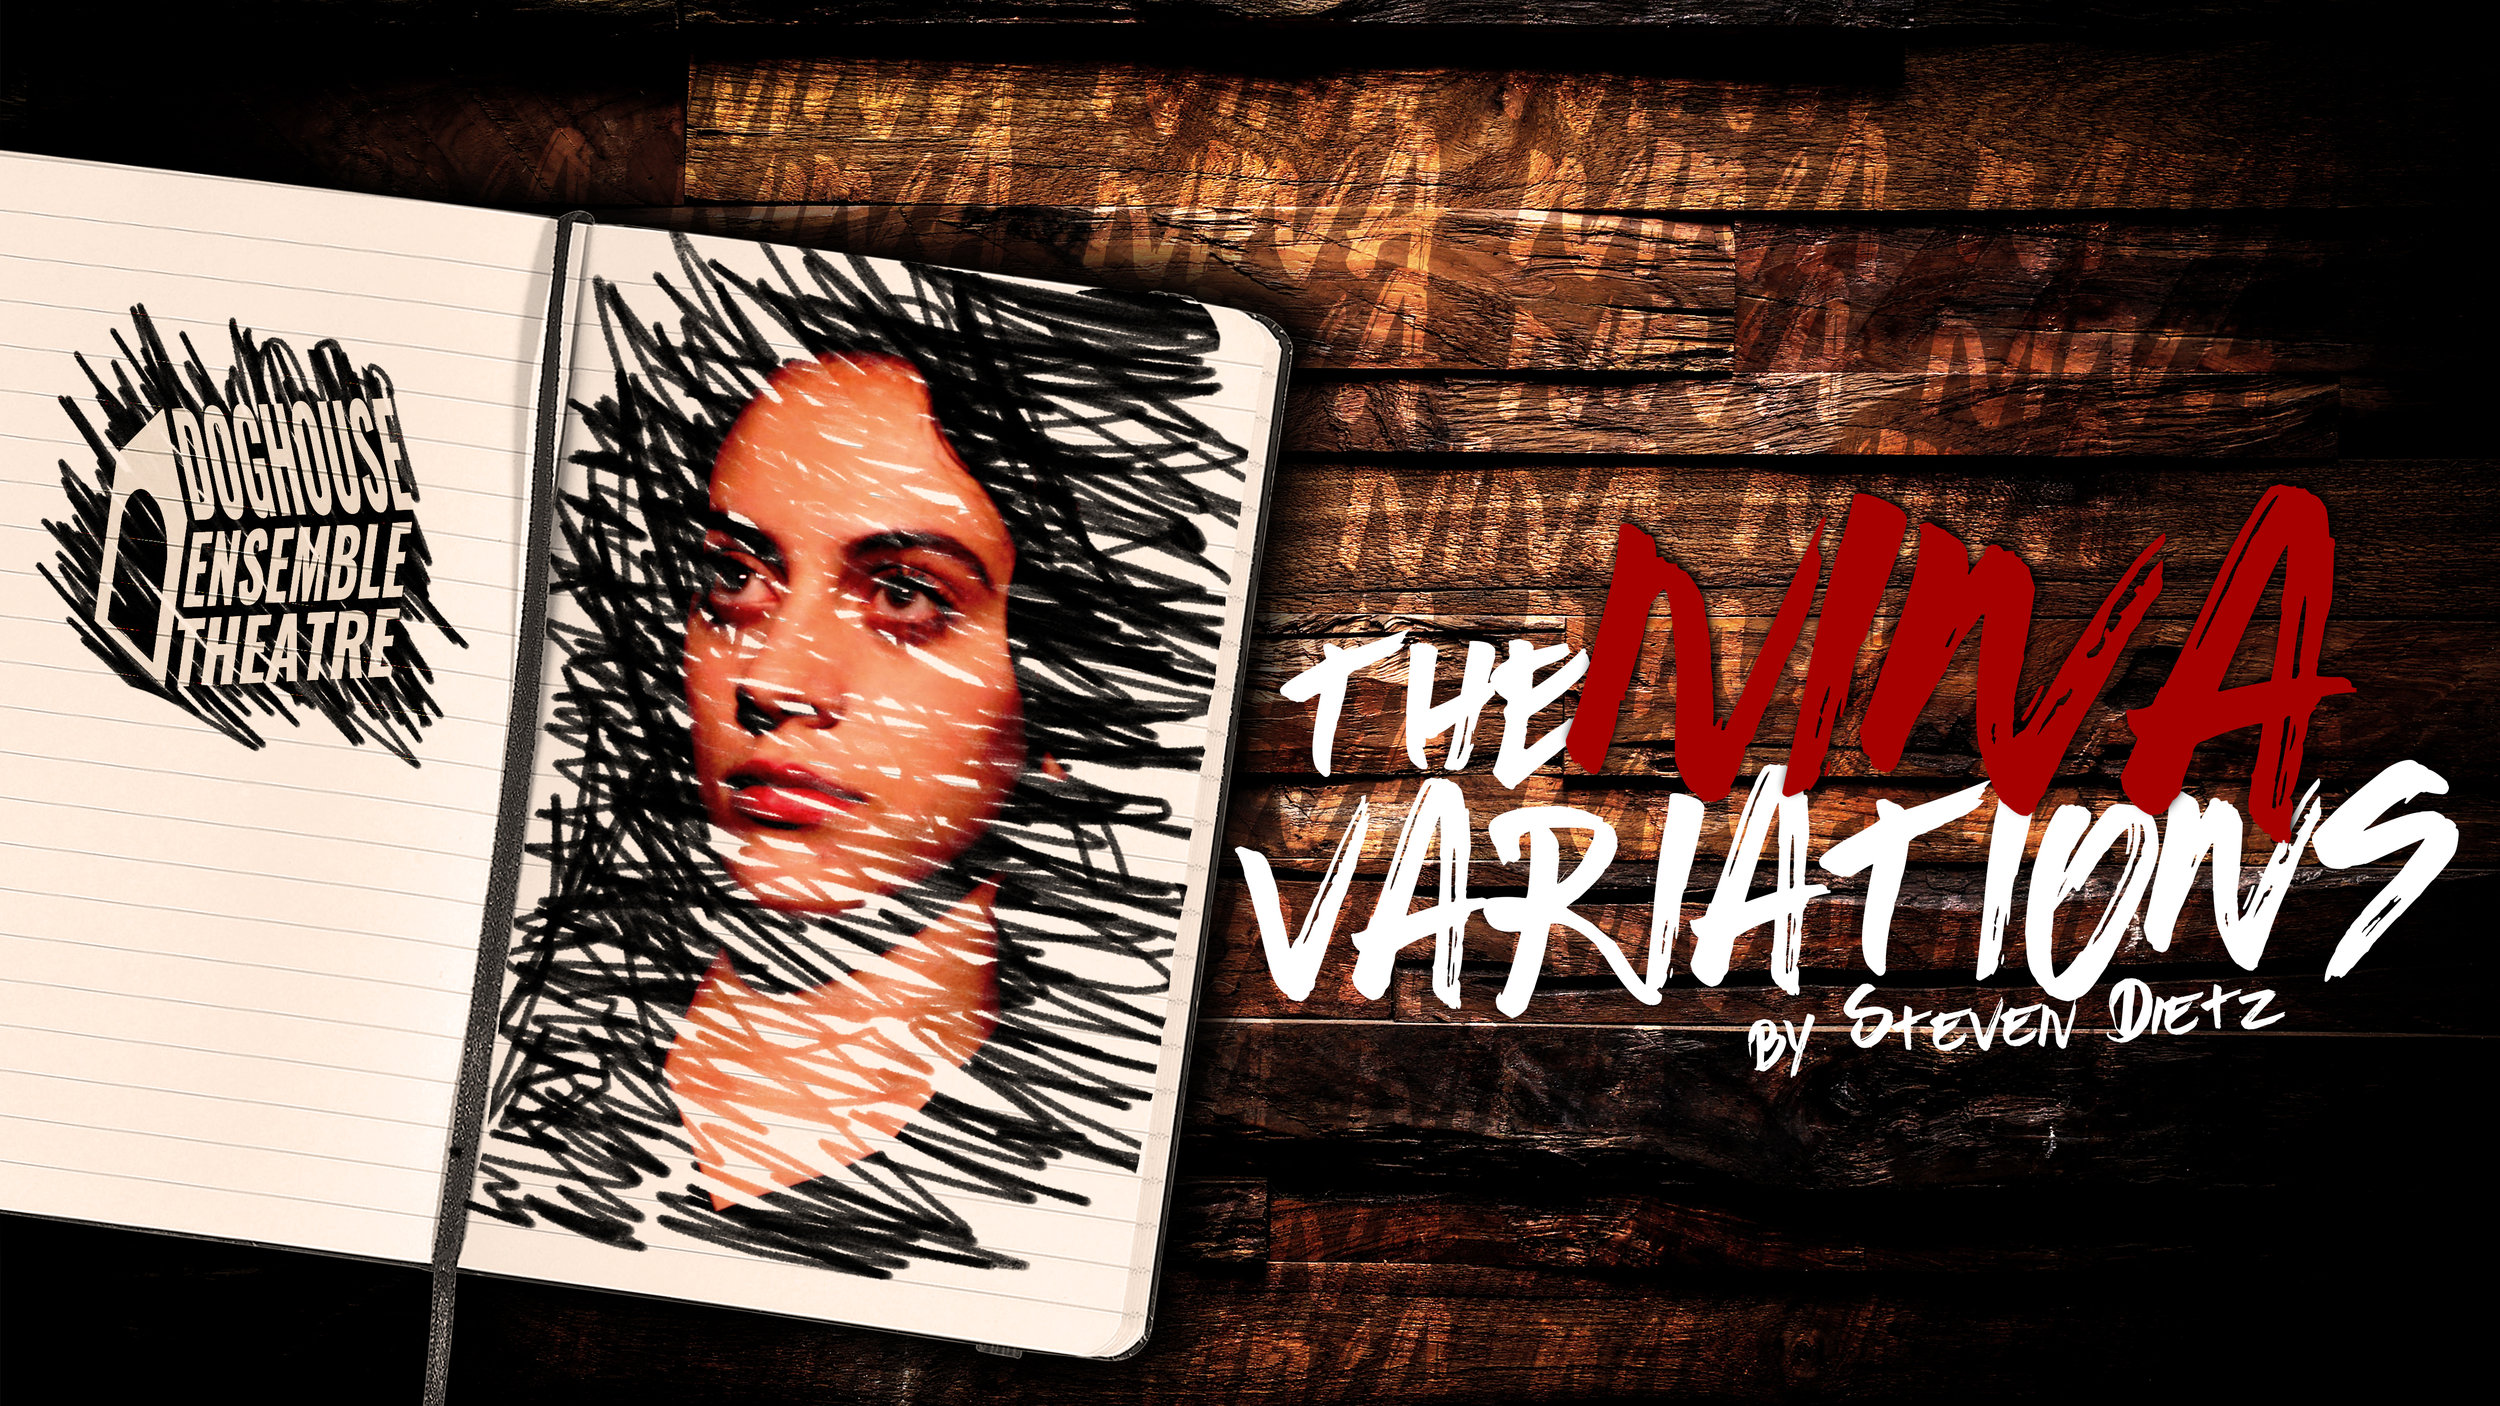 The Nina Variations - by Steven DietzDirectorNuBox Theatre (2018)Produced by Doghouse Ensemble Theatre